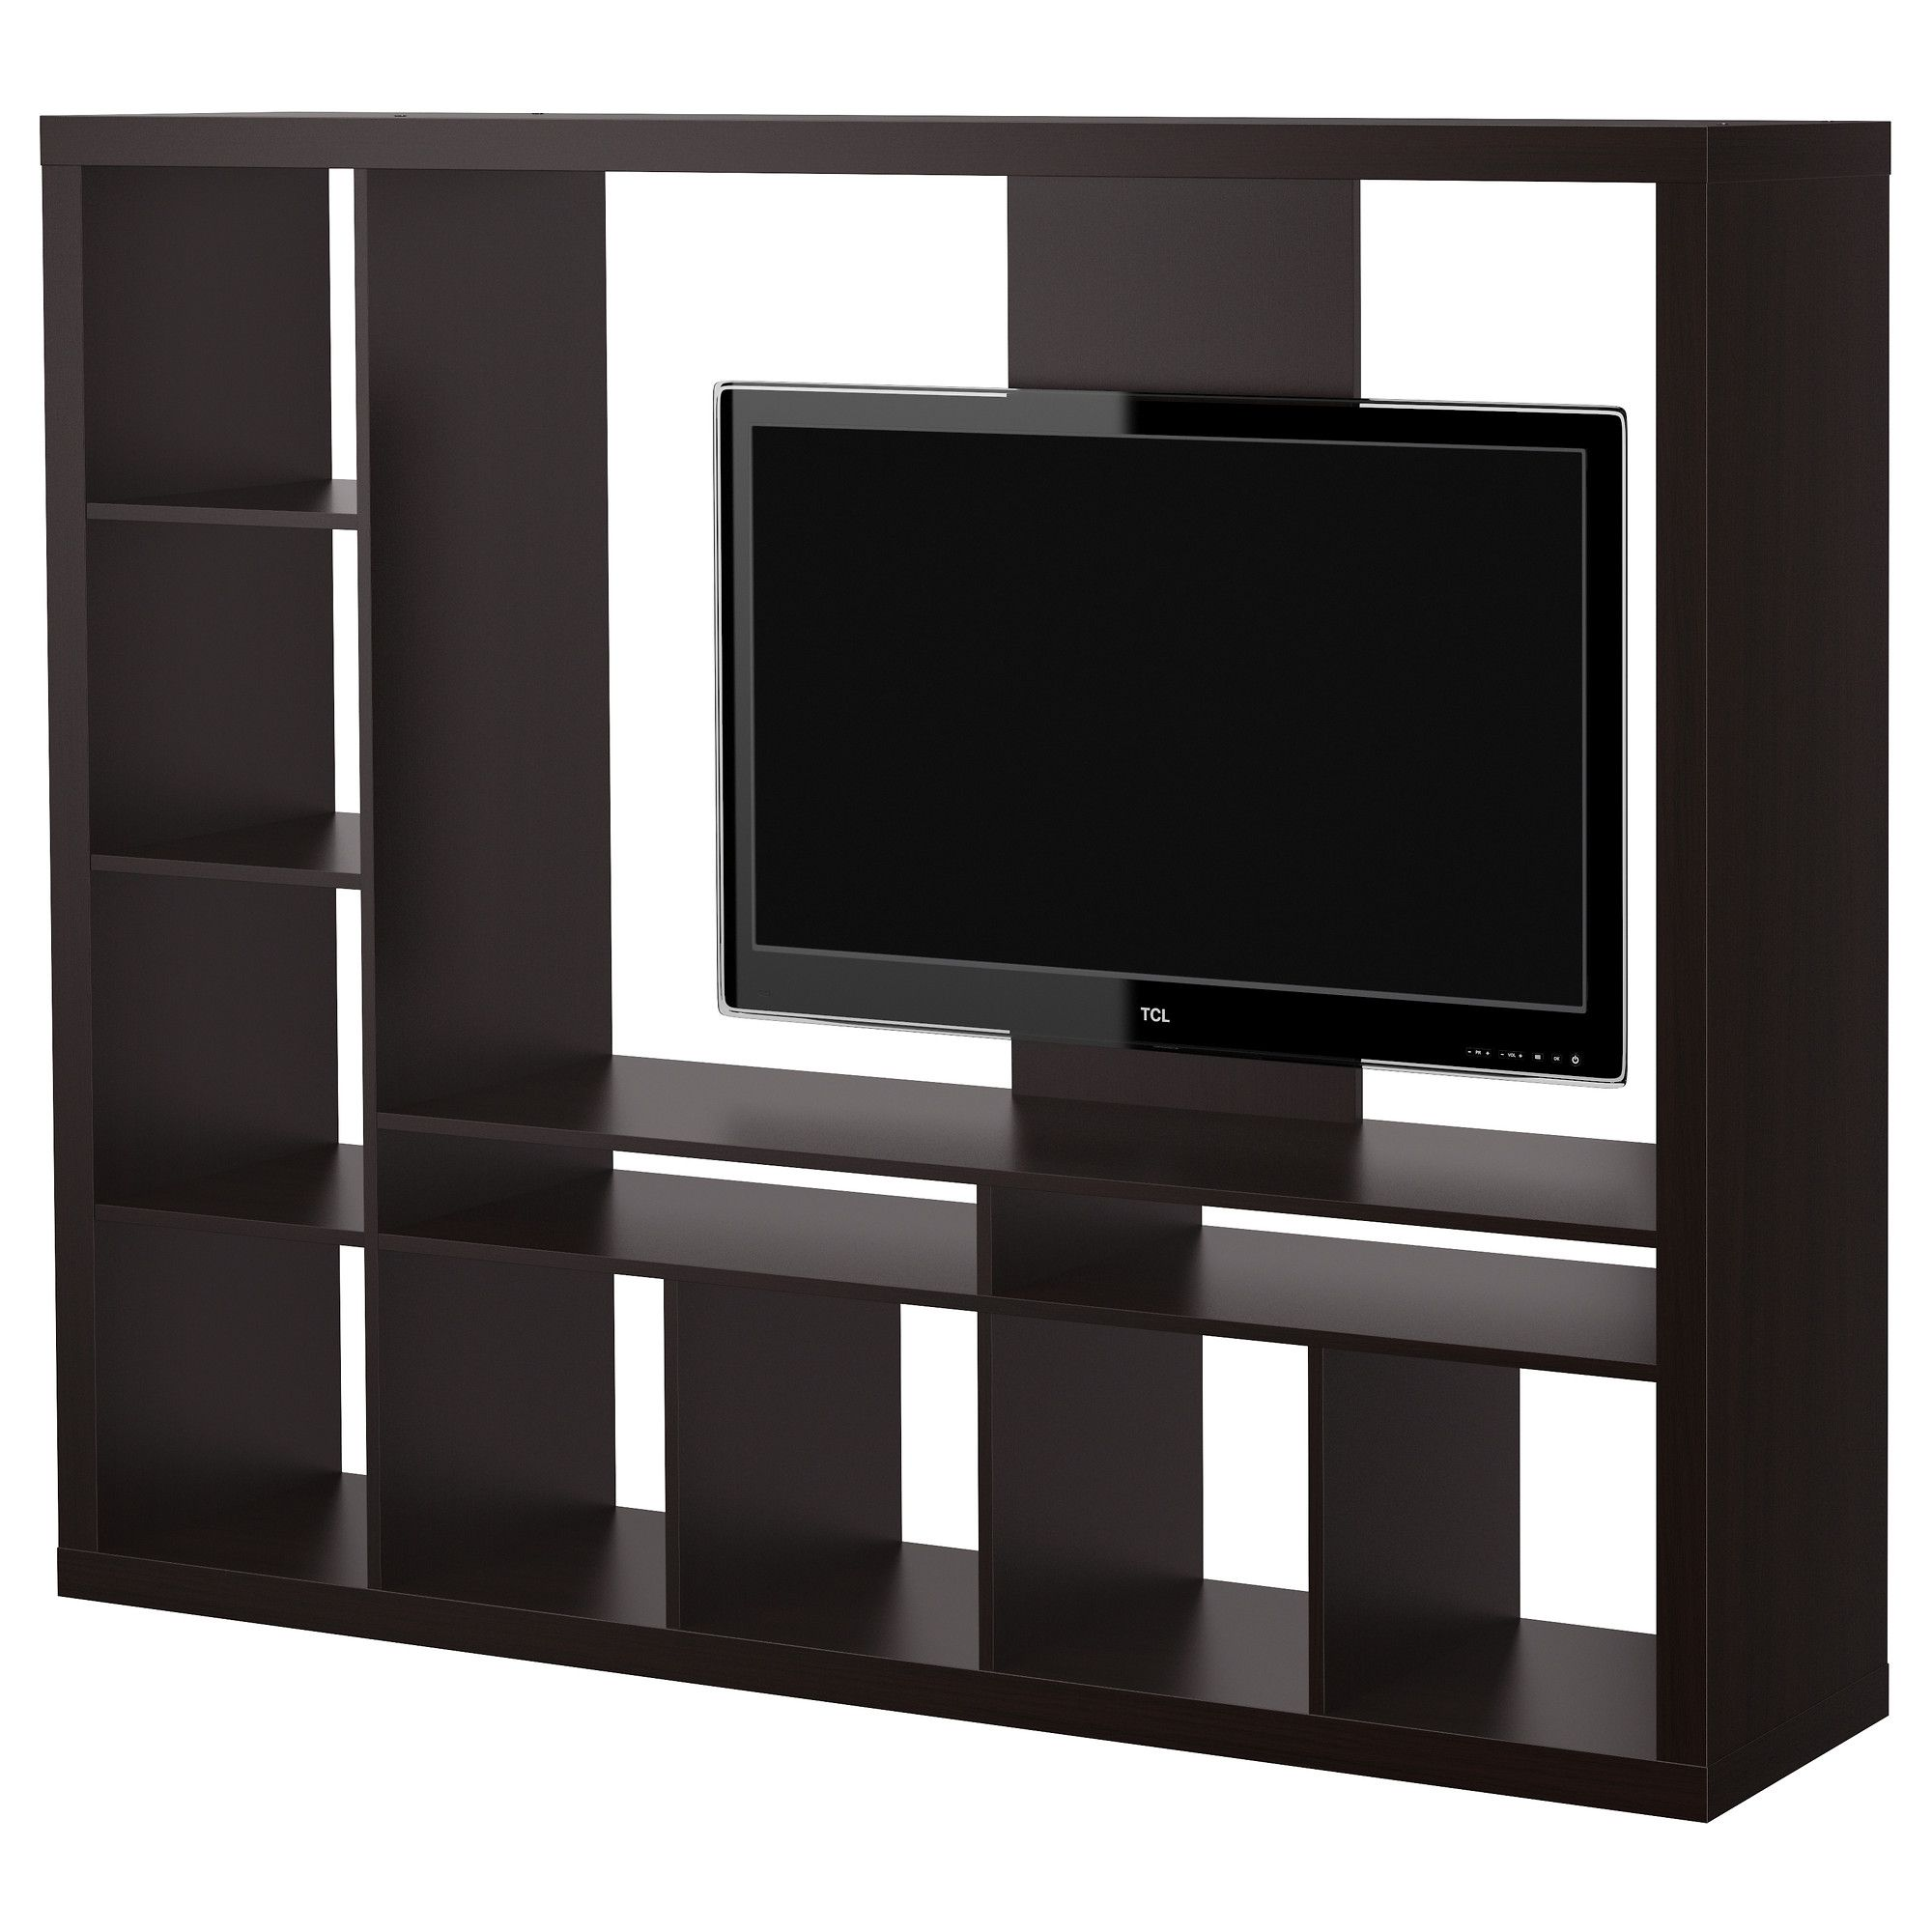 Tv Meubel Expedit Ikea.Nederland Woonkamer Ikea Tv Tv Furniture Tv Storage Unit